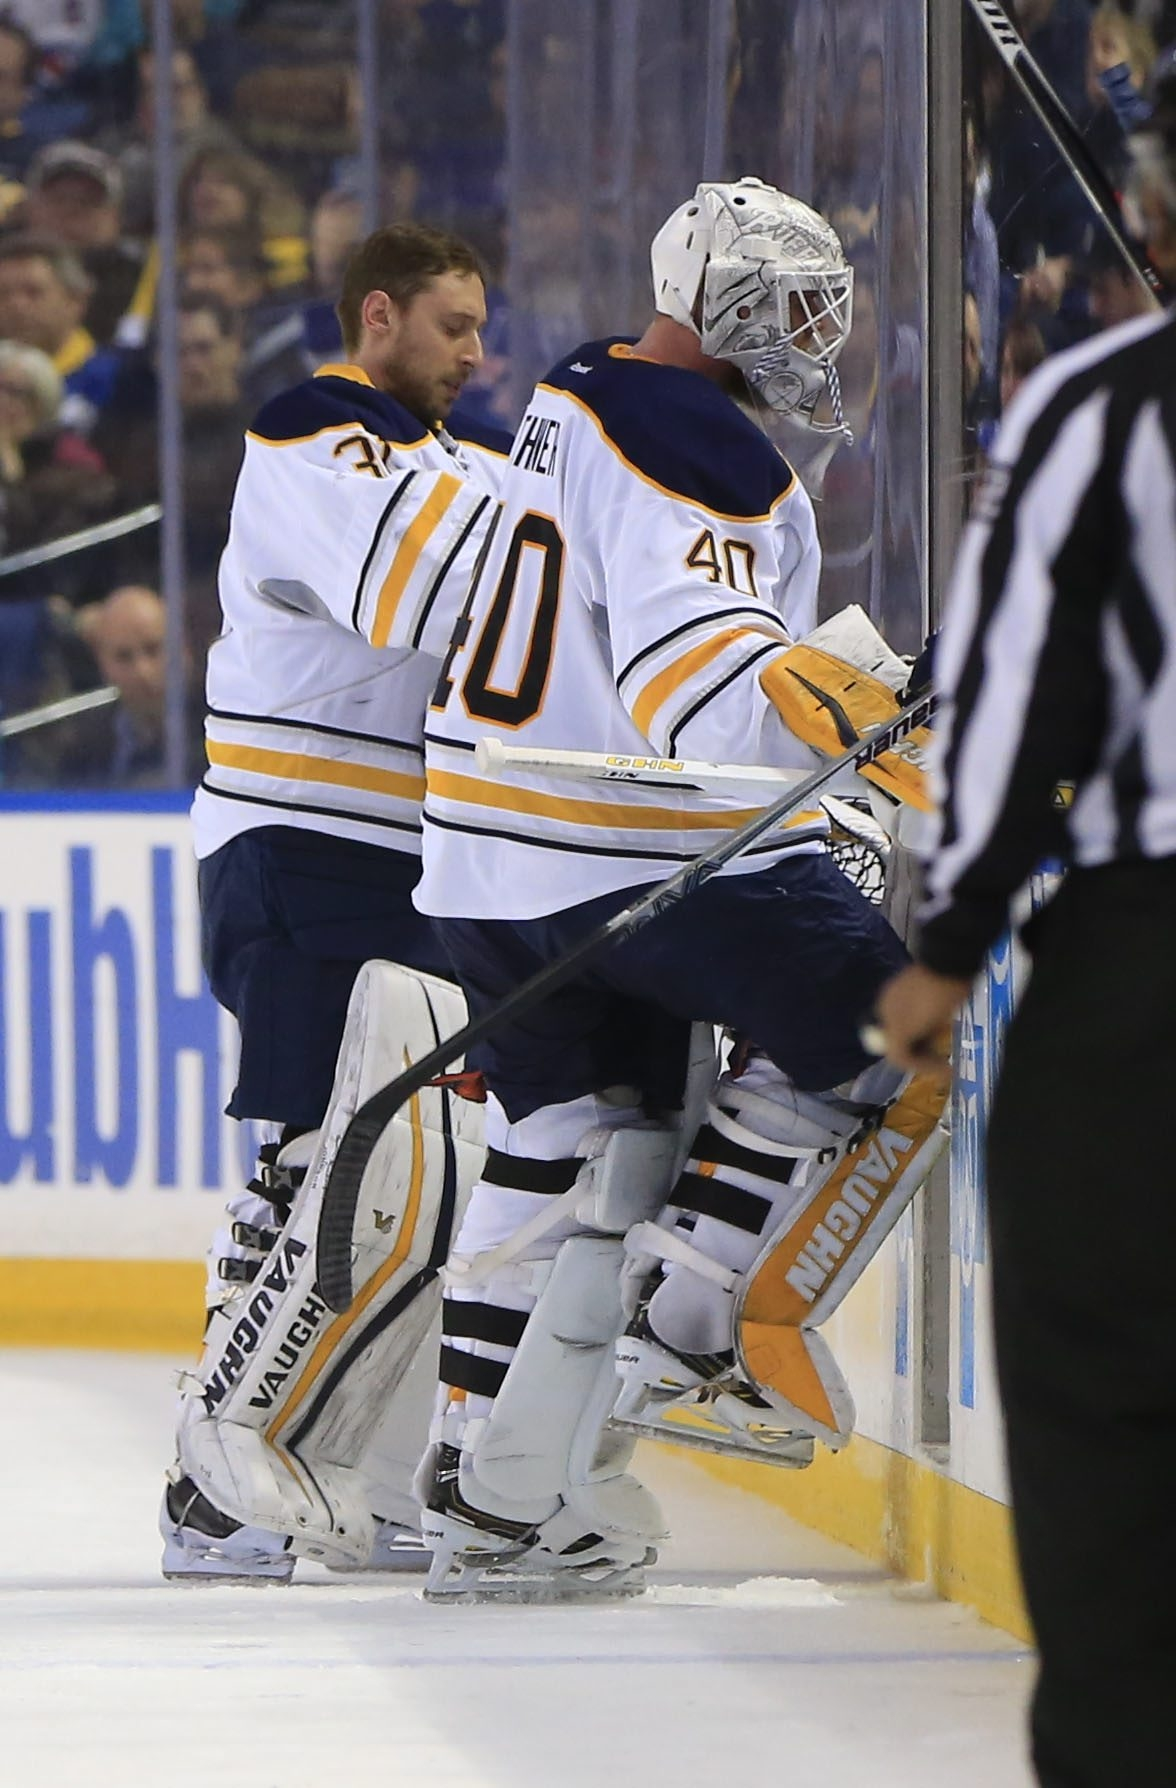 Sabres goaltender Robin Lehner is pulled for Chad Johnson in the second period of Tuesday's game with the Rangers.